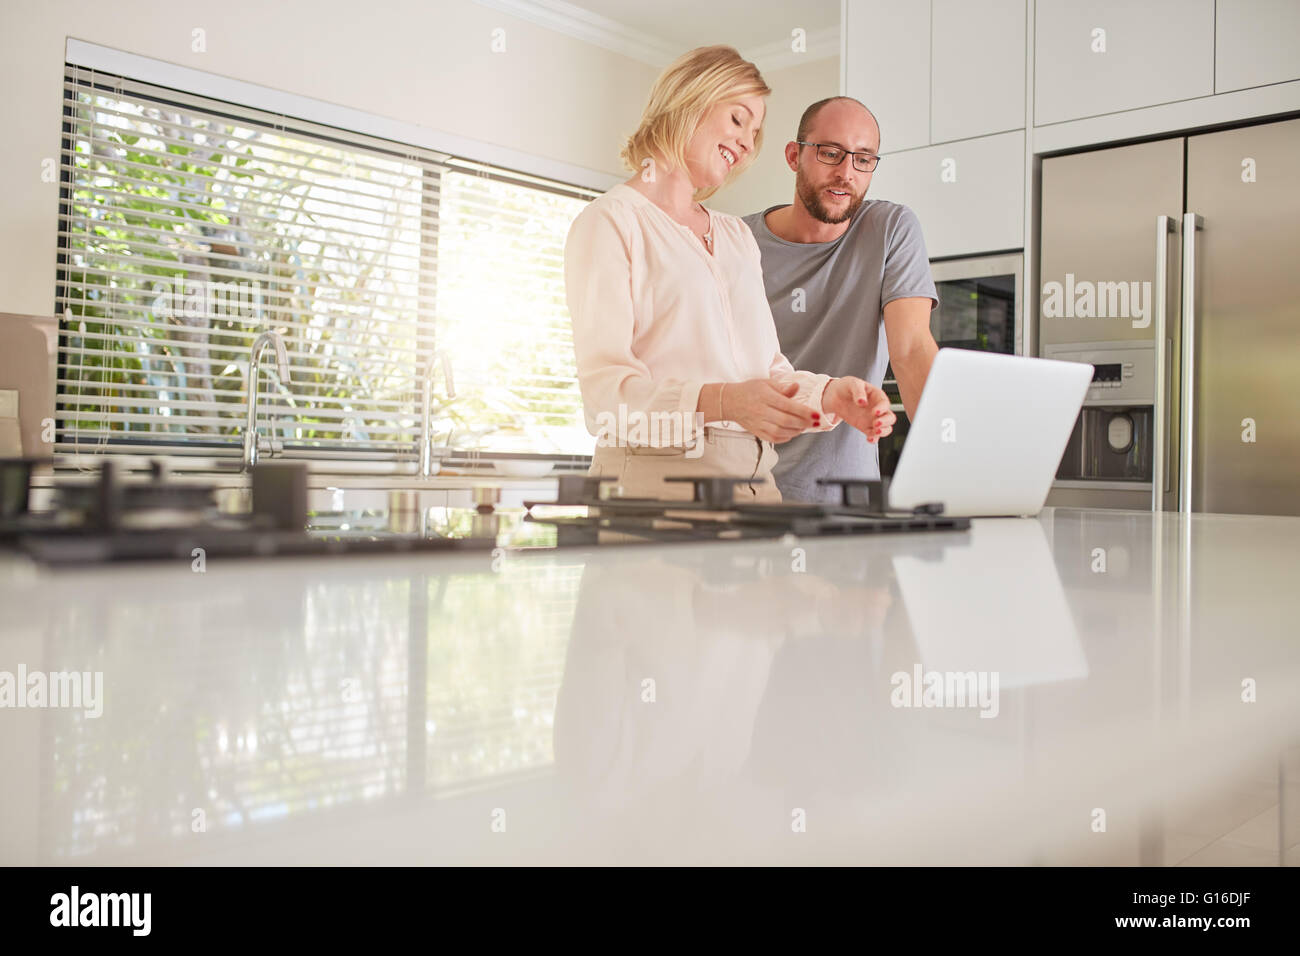 Indoor shot of a happy couple using laptop computer in the kitchen. Woman showing something on laptop to man. - Stock Image